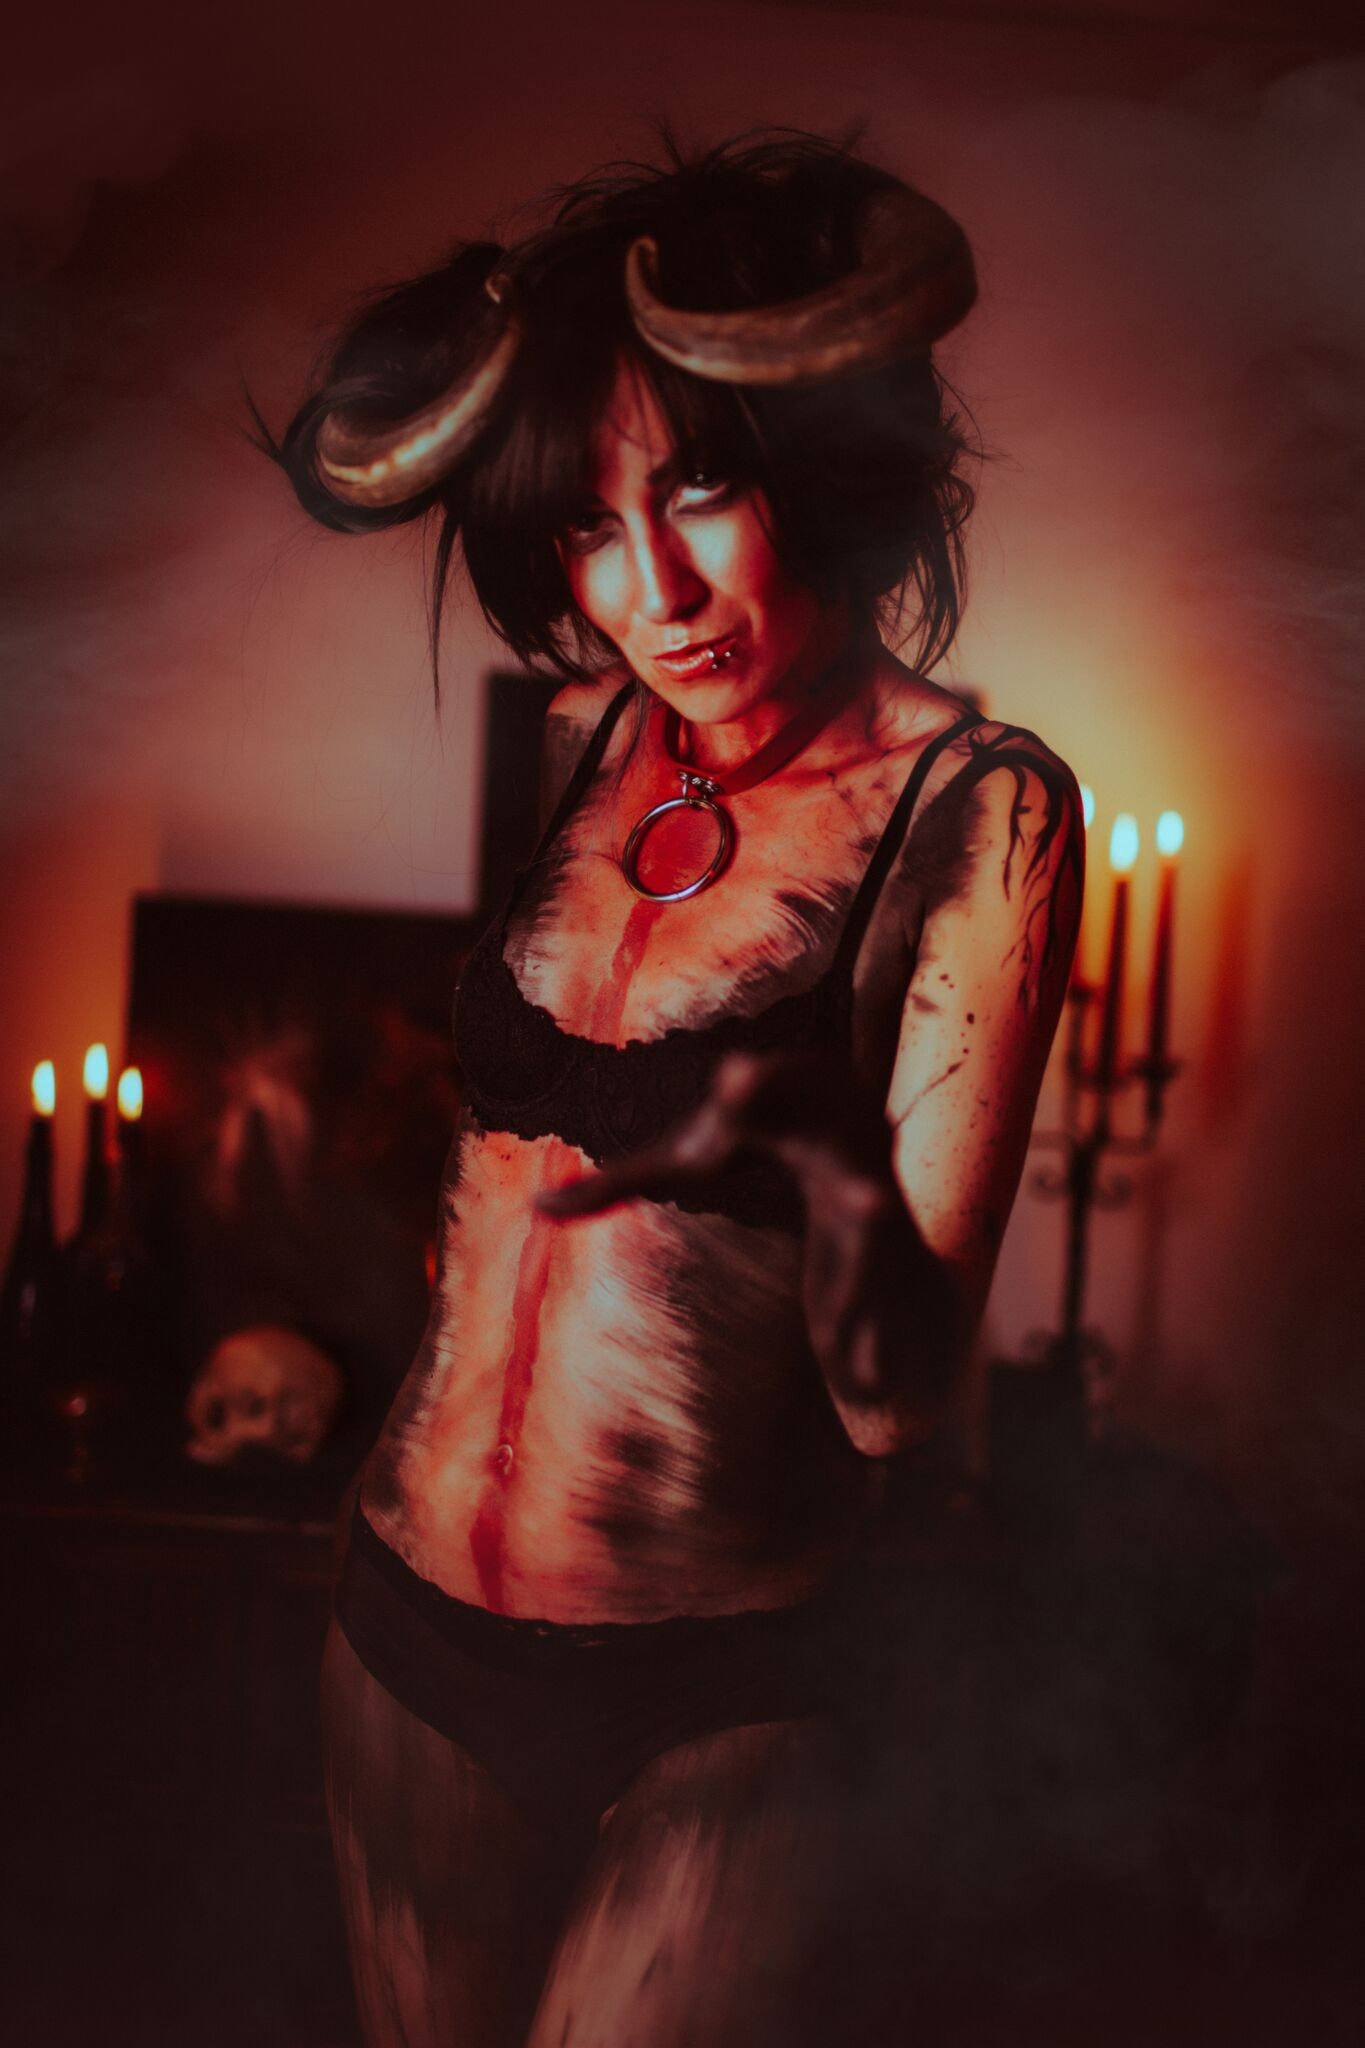 katrin-albert-photography-mccal-strange-halloween-selects-highres-22_preview.jpeg